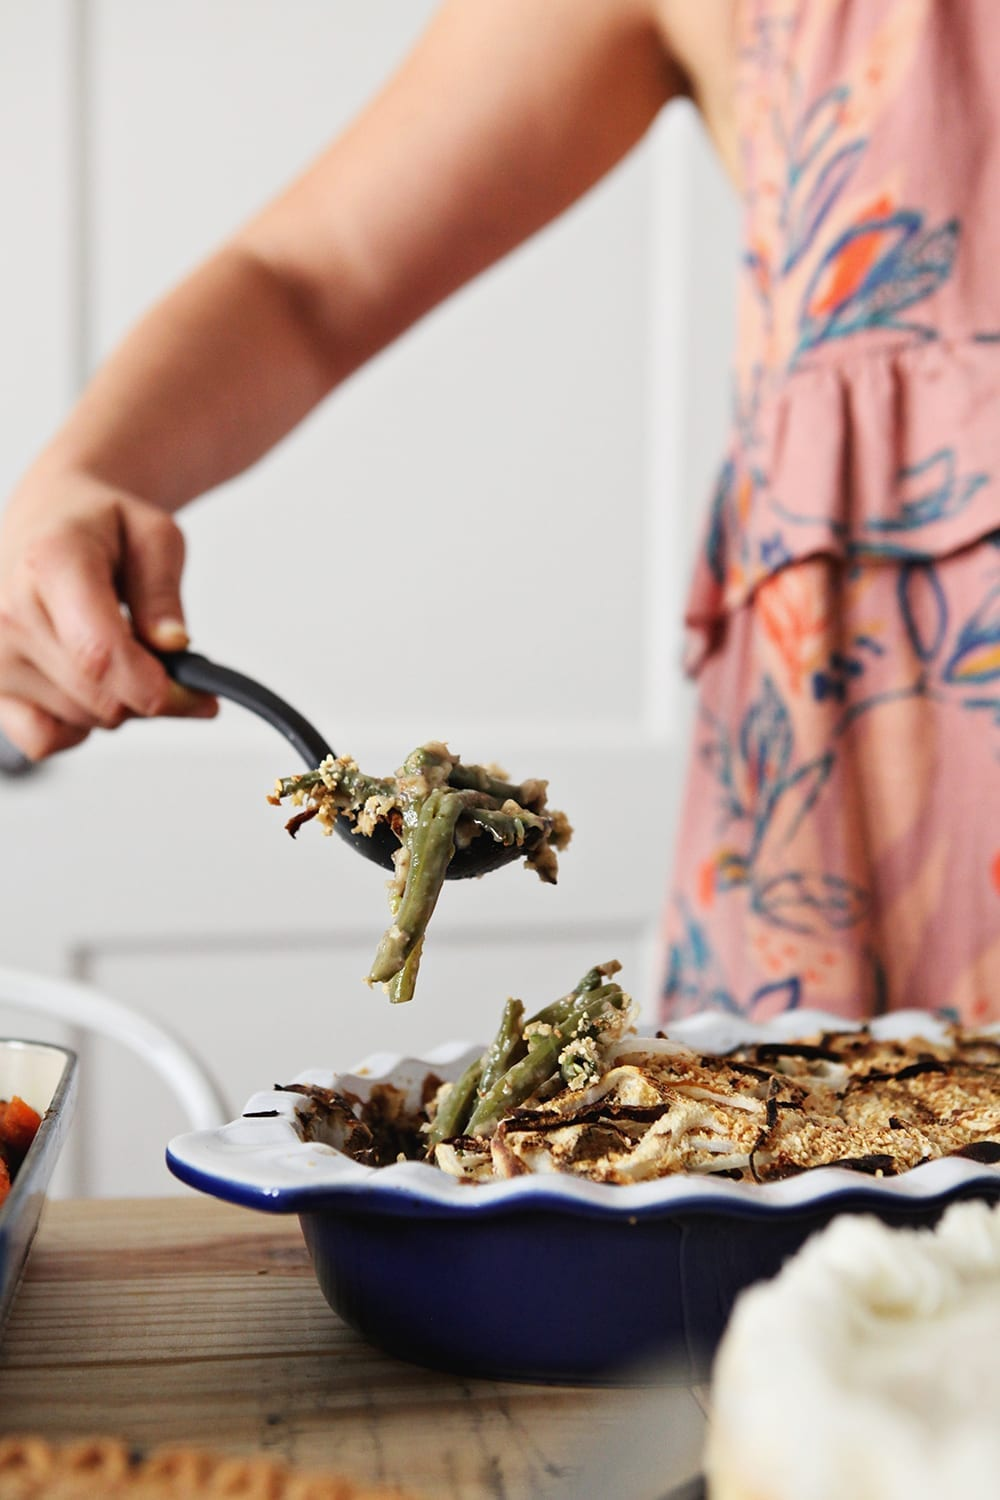 A woman lifts a spoon of Fresh Green Bean Casserole out of the dish